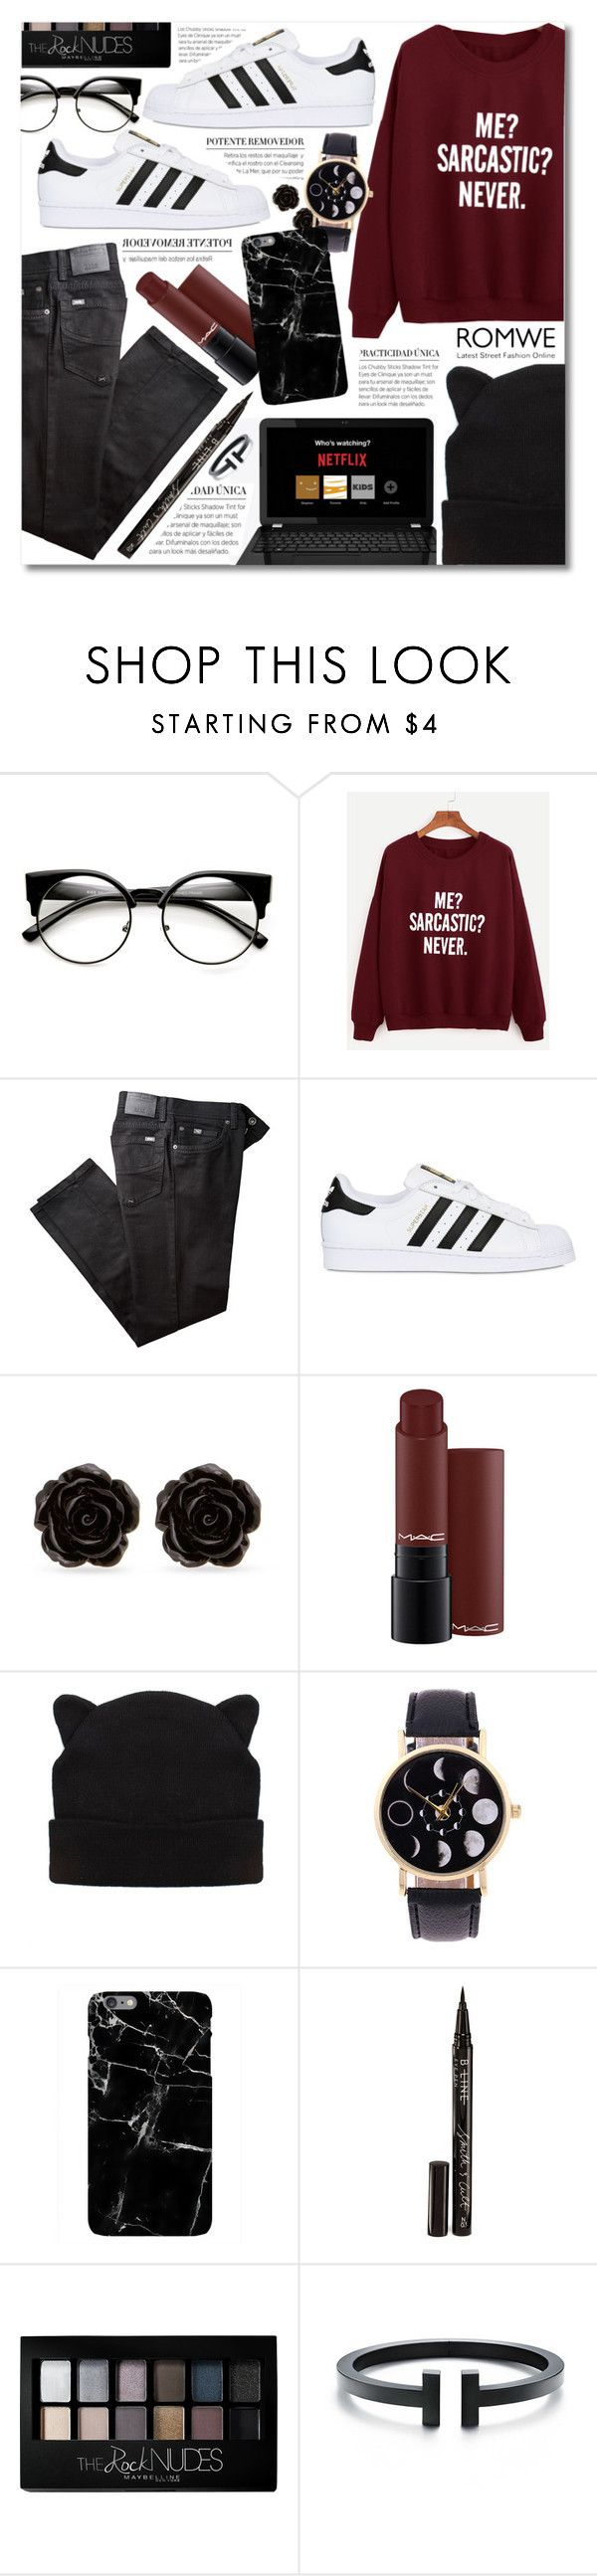 """Cute & Cozy."" by elizabeth4ever ❤ liked on Polyvore featuring BRAX, adidas Originals, Erica Lyons, Smith & Cult and Maybelline"